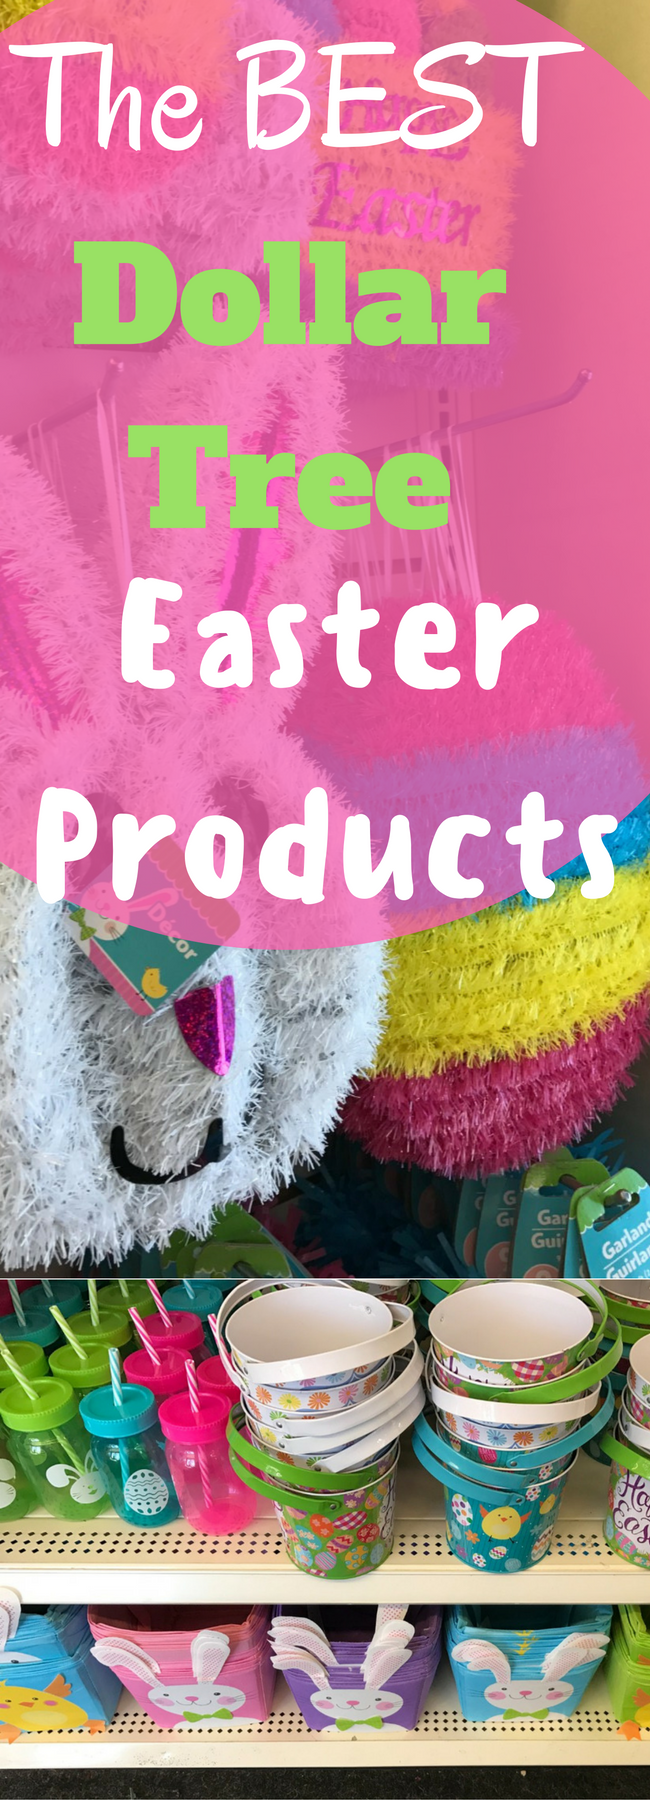 Dollar Tree Easter / Easter Dollar Tree / Easter Dollar Store / Easter Ideas / Frugal Easter Ideas / Easter 2017 / Easy Easter Ideas / Easter Ideas for Kids